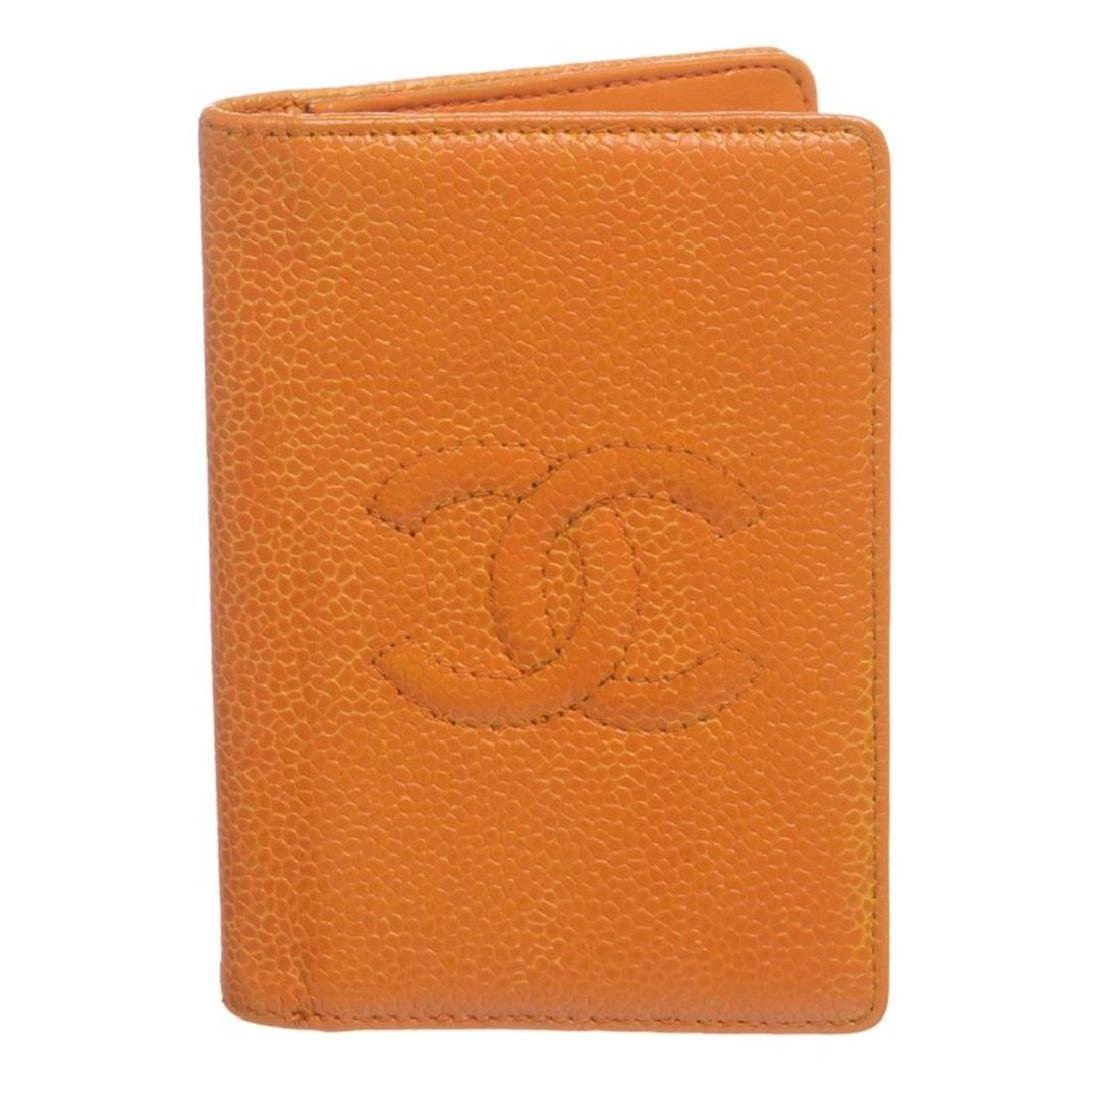 Chanel Orange Caviar Leather CC Logo Small Bifold